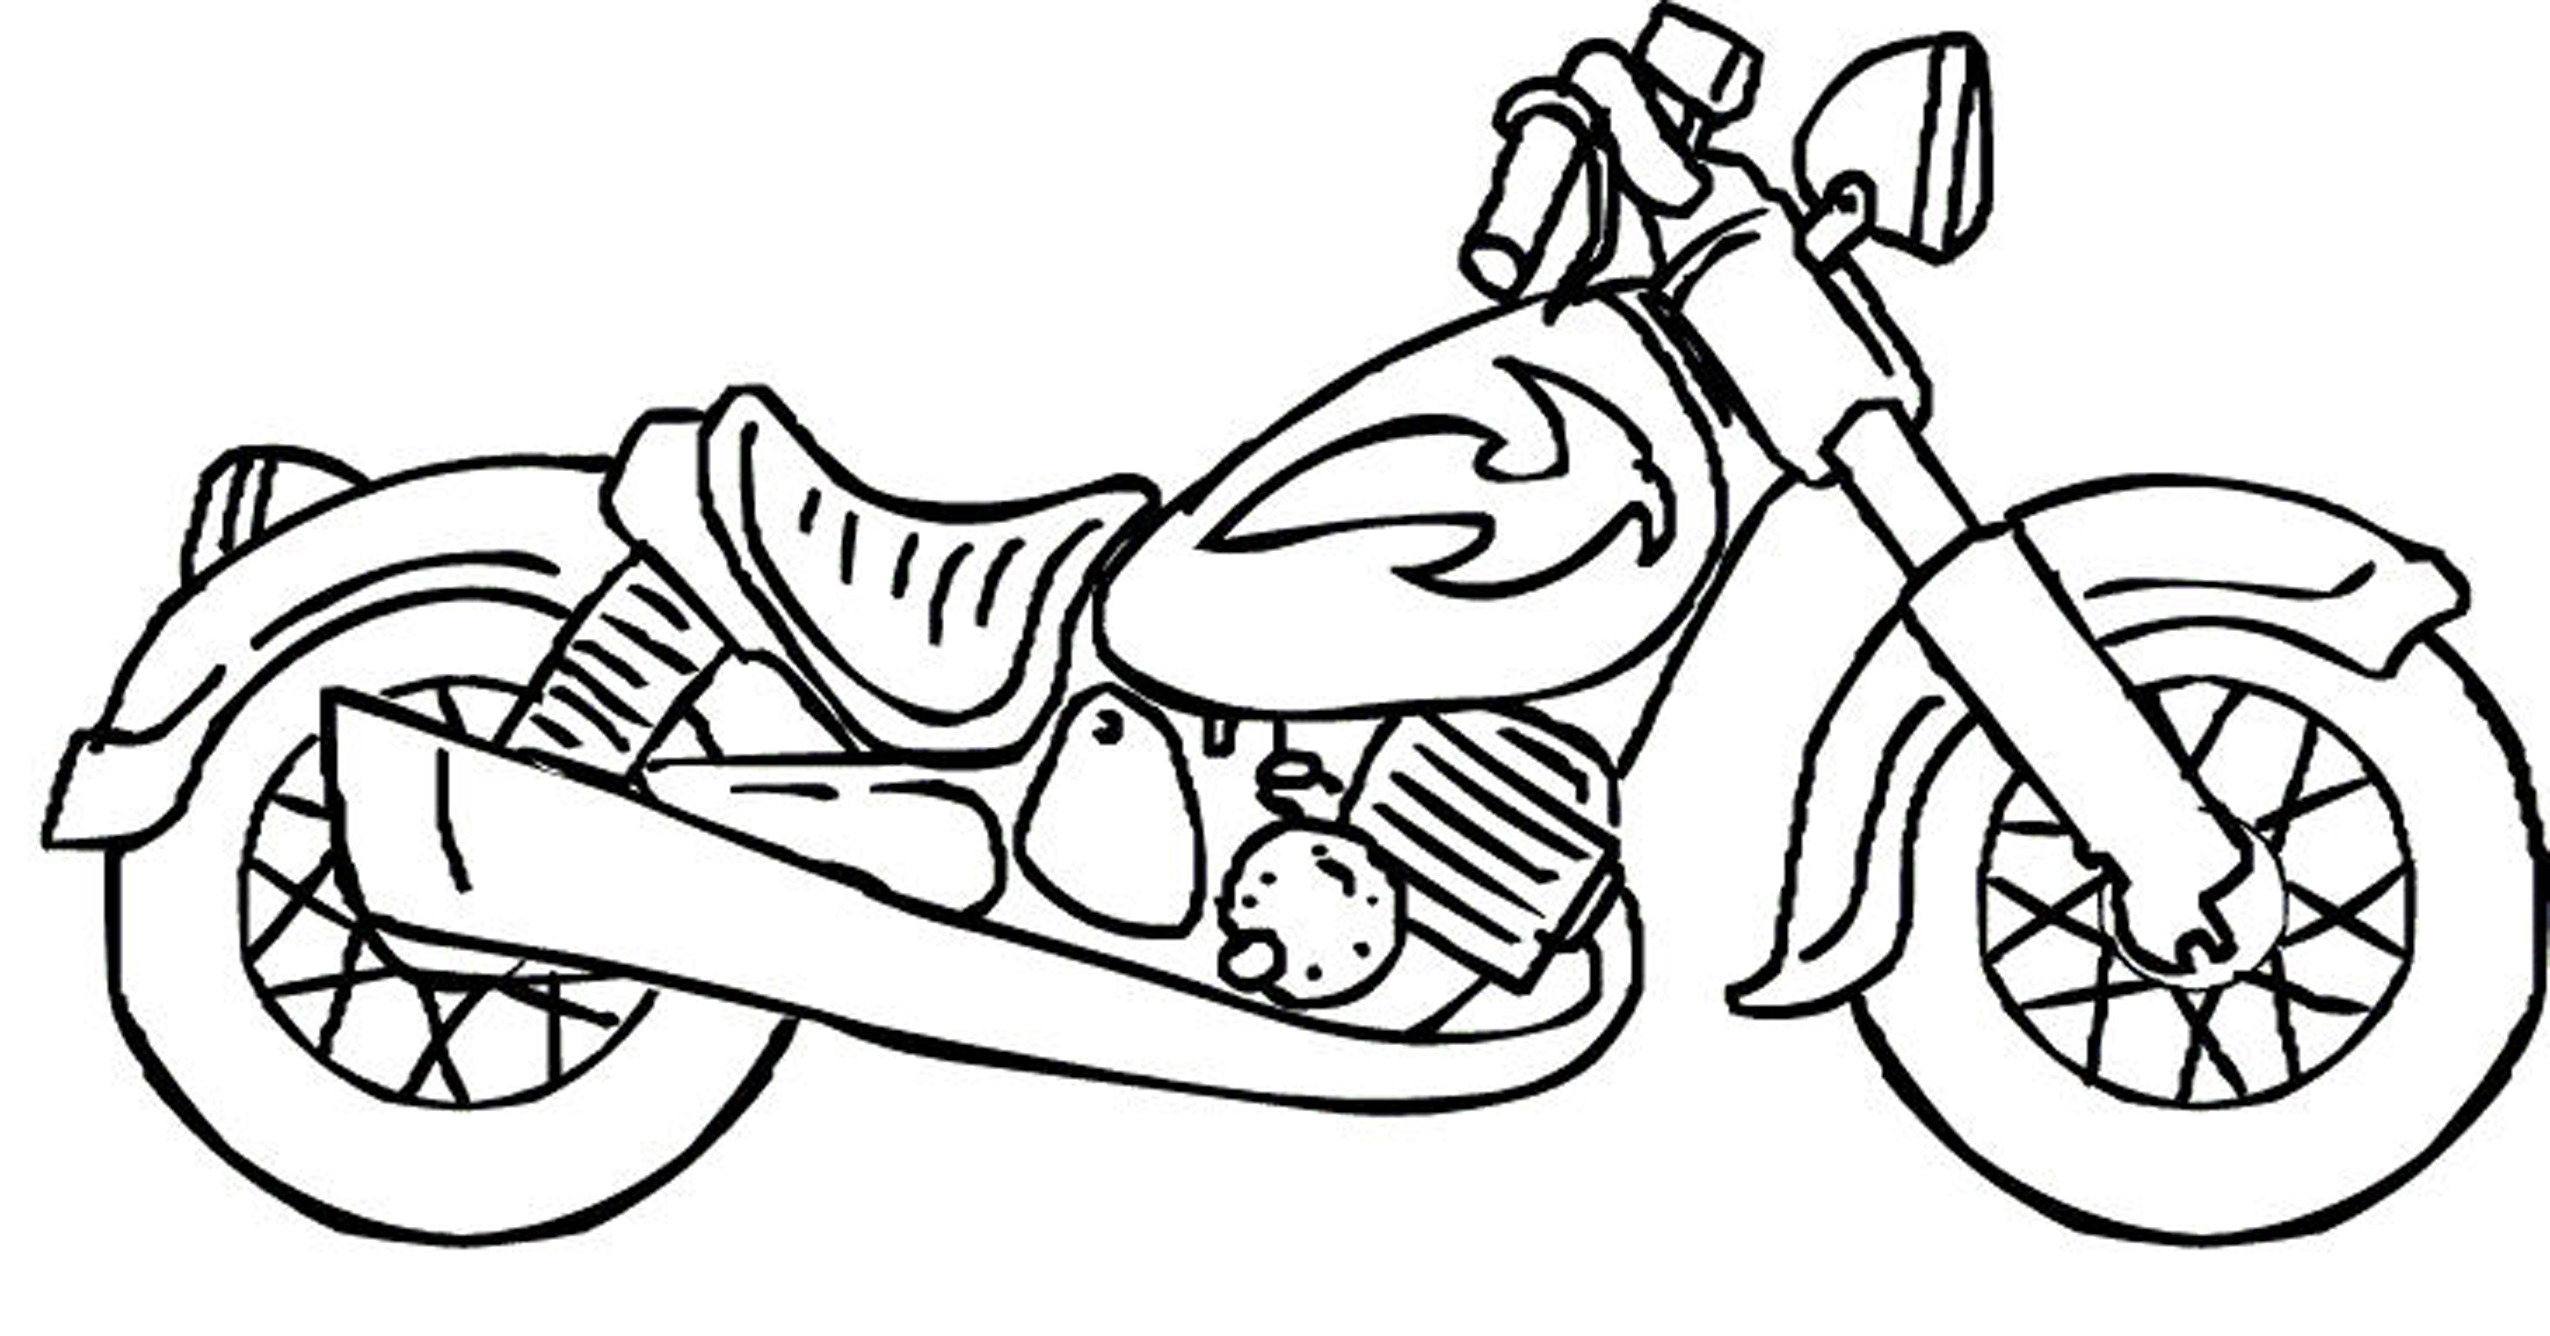 Harley Davidson Coloring Pages At Getcolorings